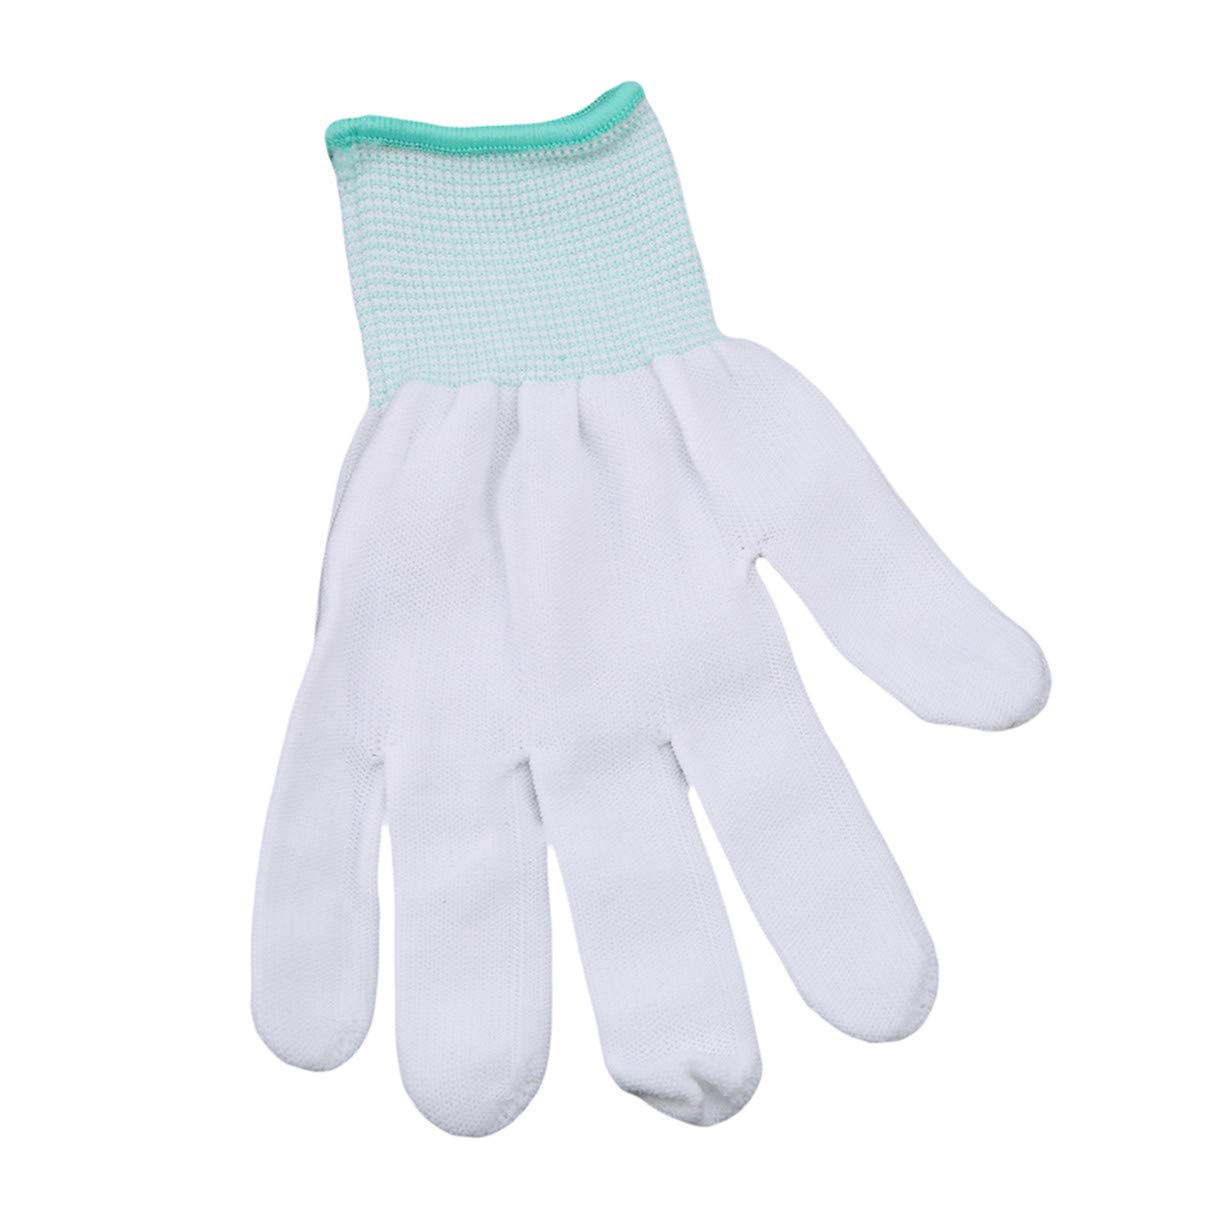 Essencedelight Cleaning Gloves Nylon Working Gloves Stretchy Full Finger Anti Static Non-Slip Breathable Gloves for Car Washing Household Cleaning Keeper